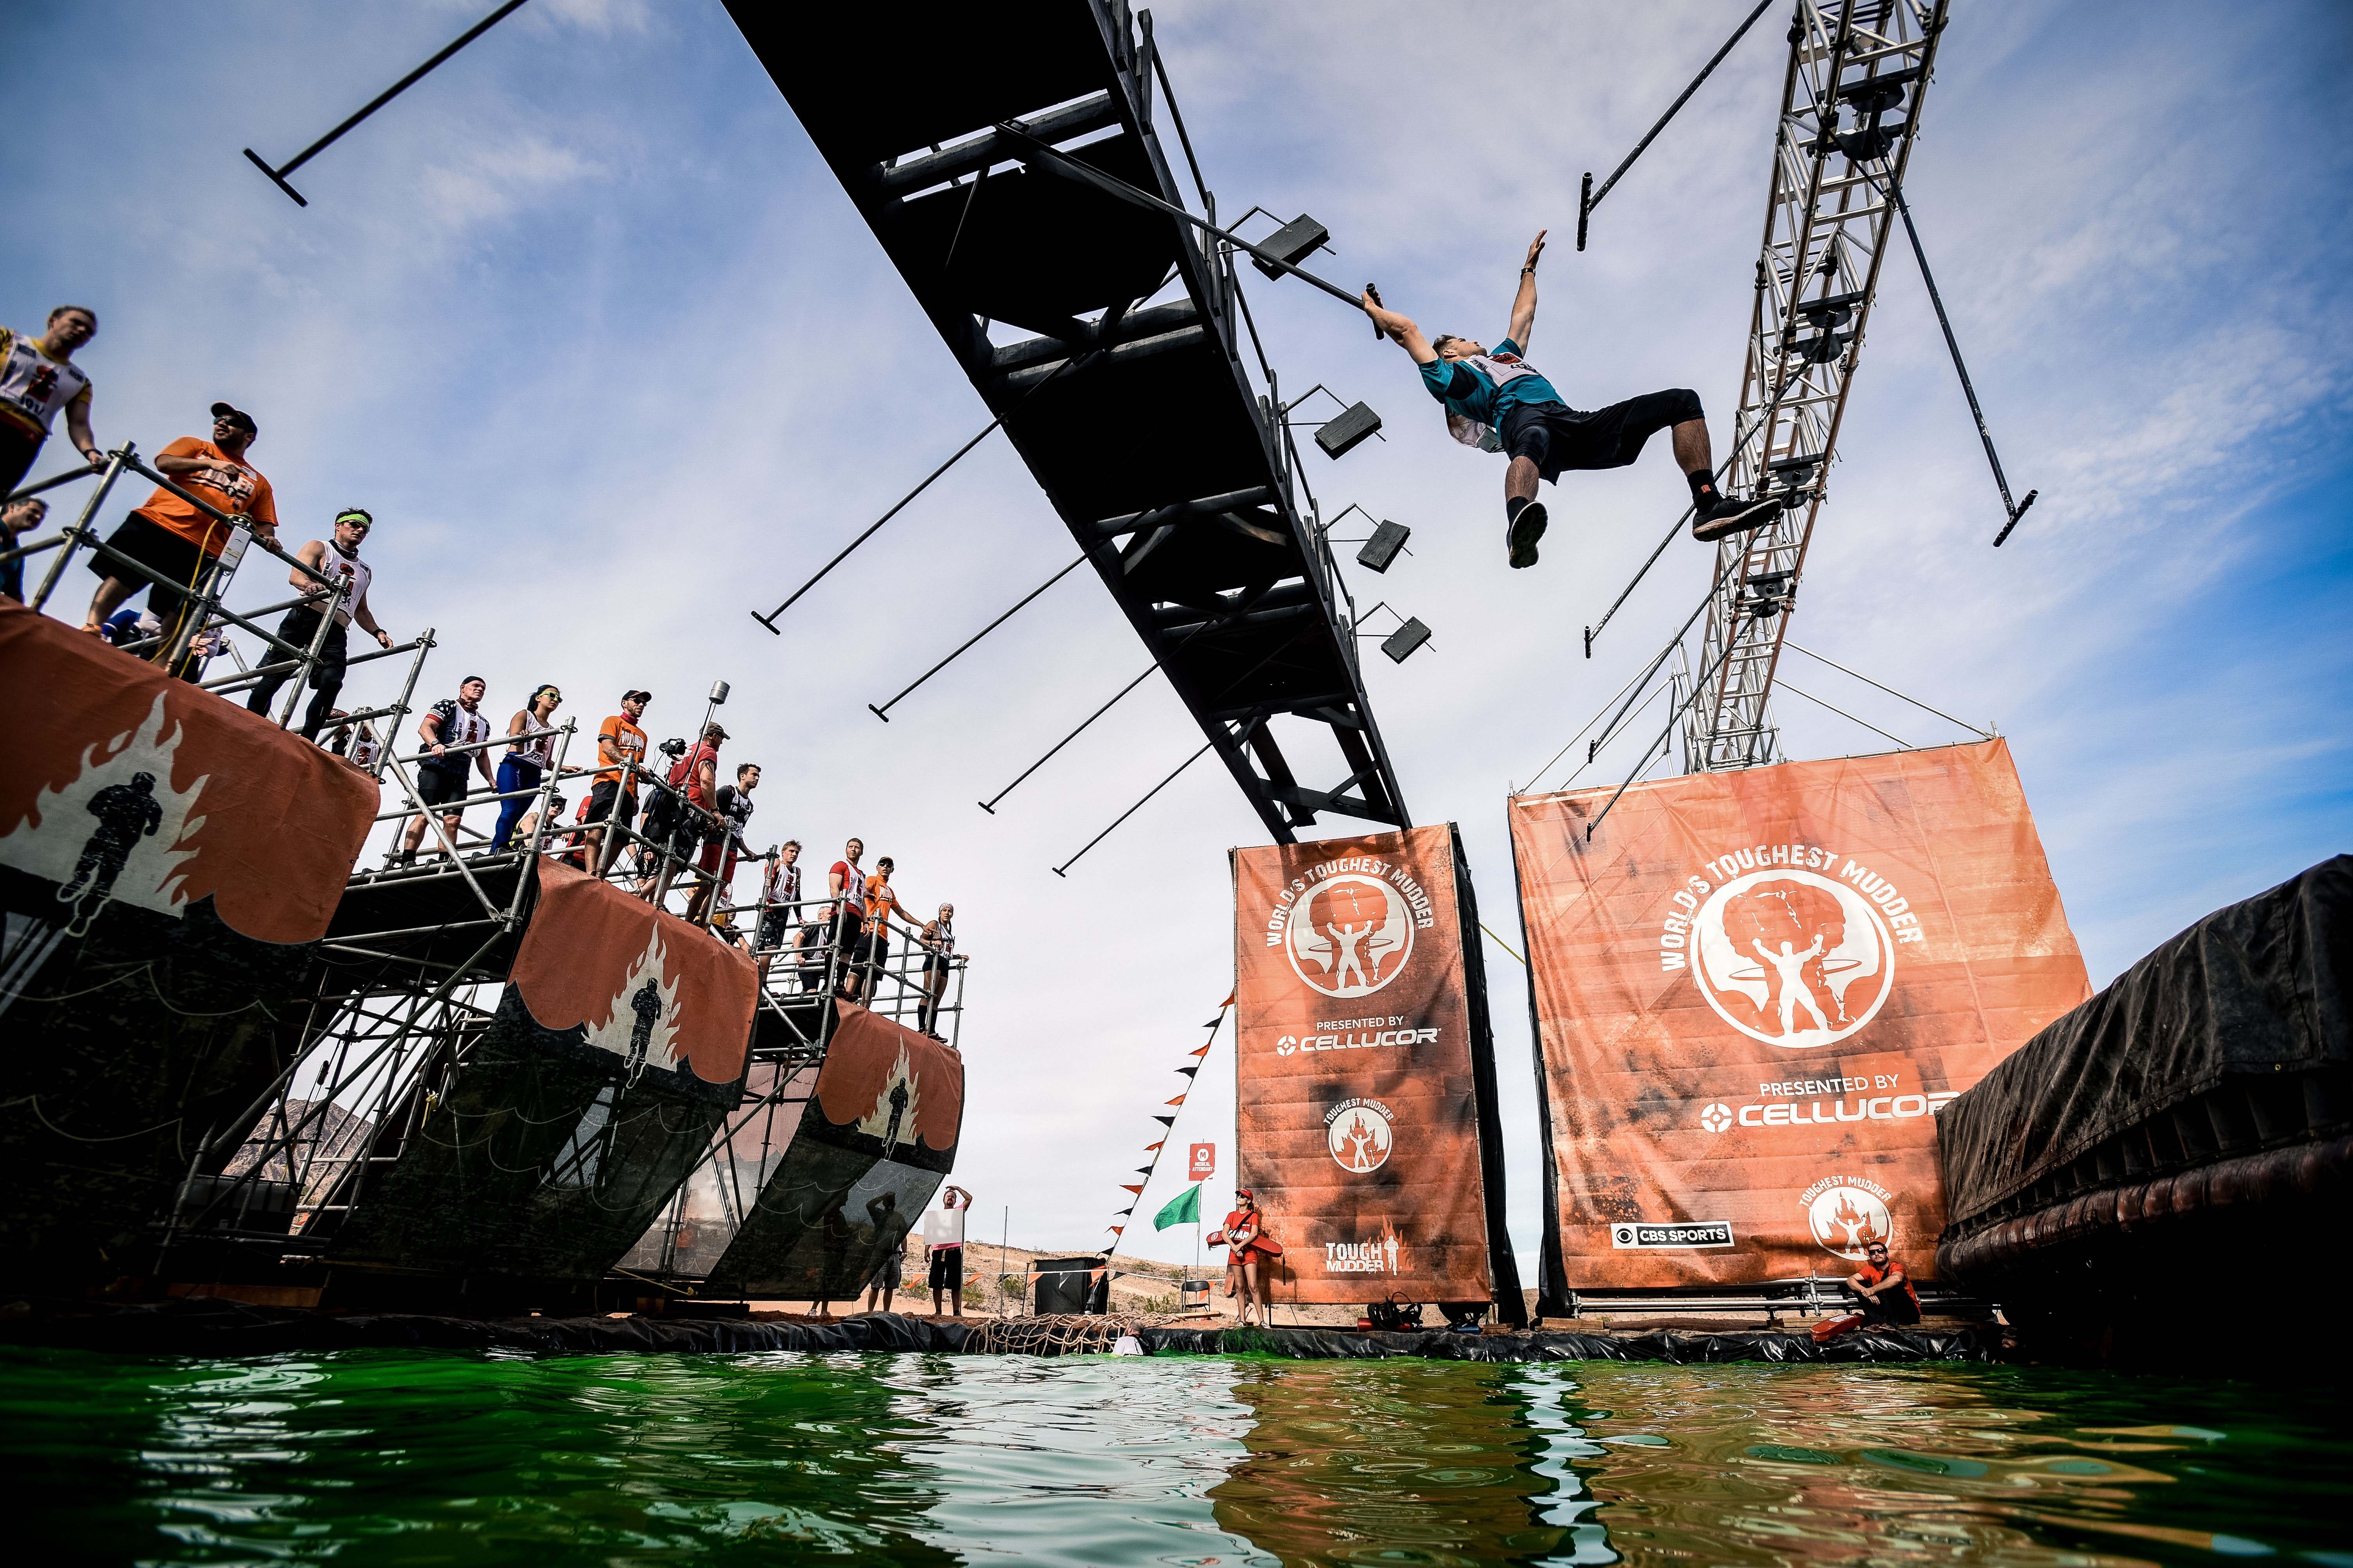 The 10- to 12-mile military-style obstacle course is meant to push the limits of its participants, testing strength, agility, endurance, and mental grit.